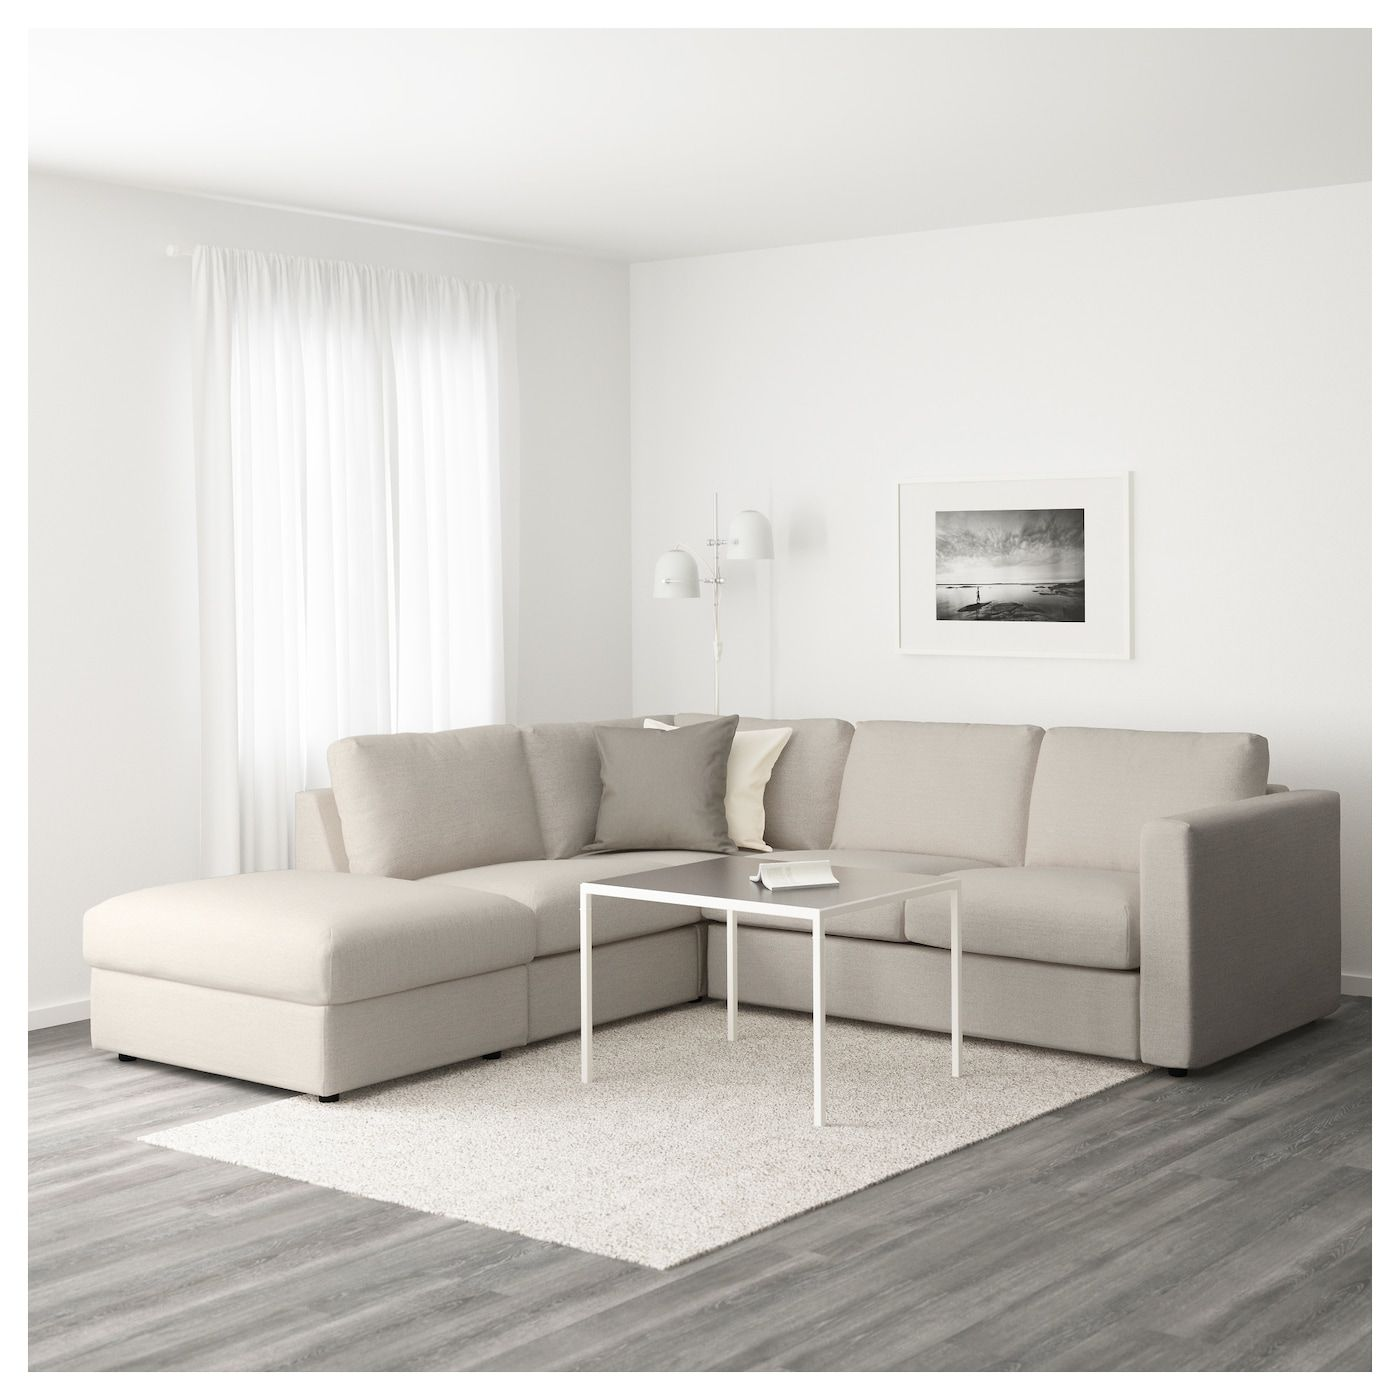 Vimle Sectional 4 Seat Corner With Open End Gunnared Beige